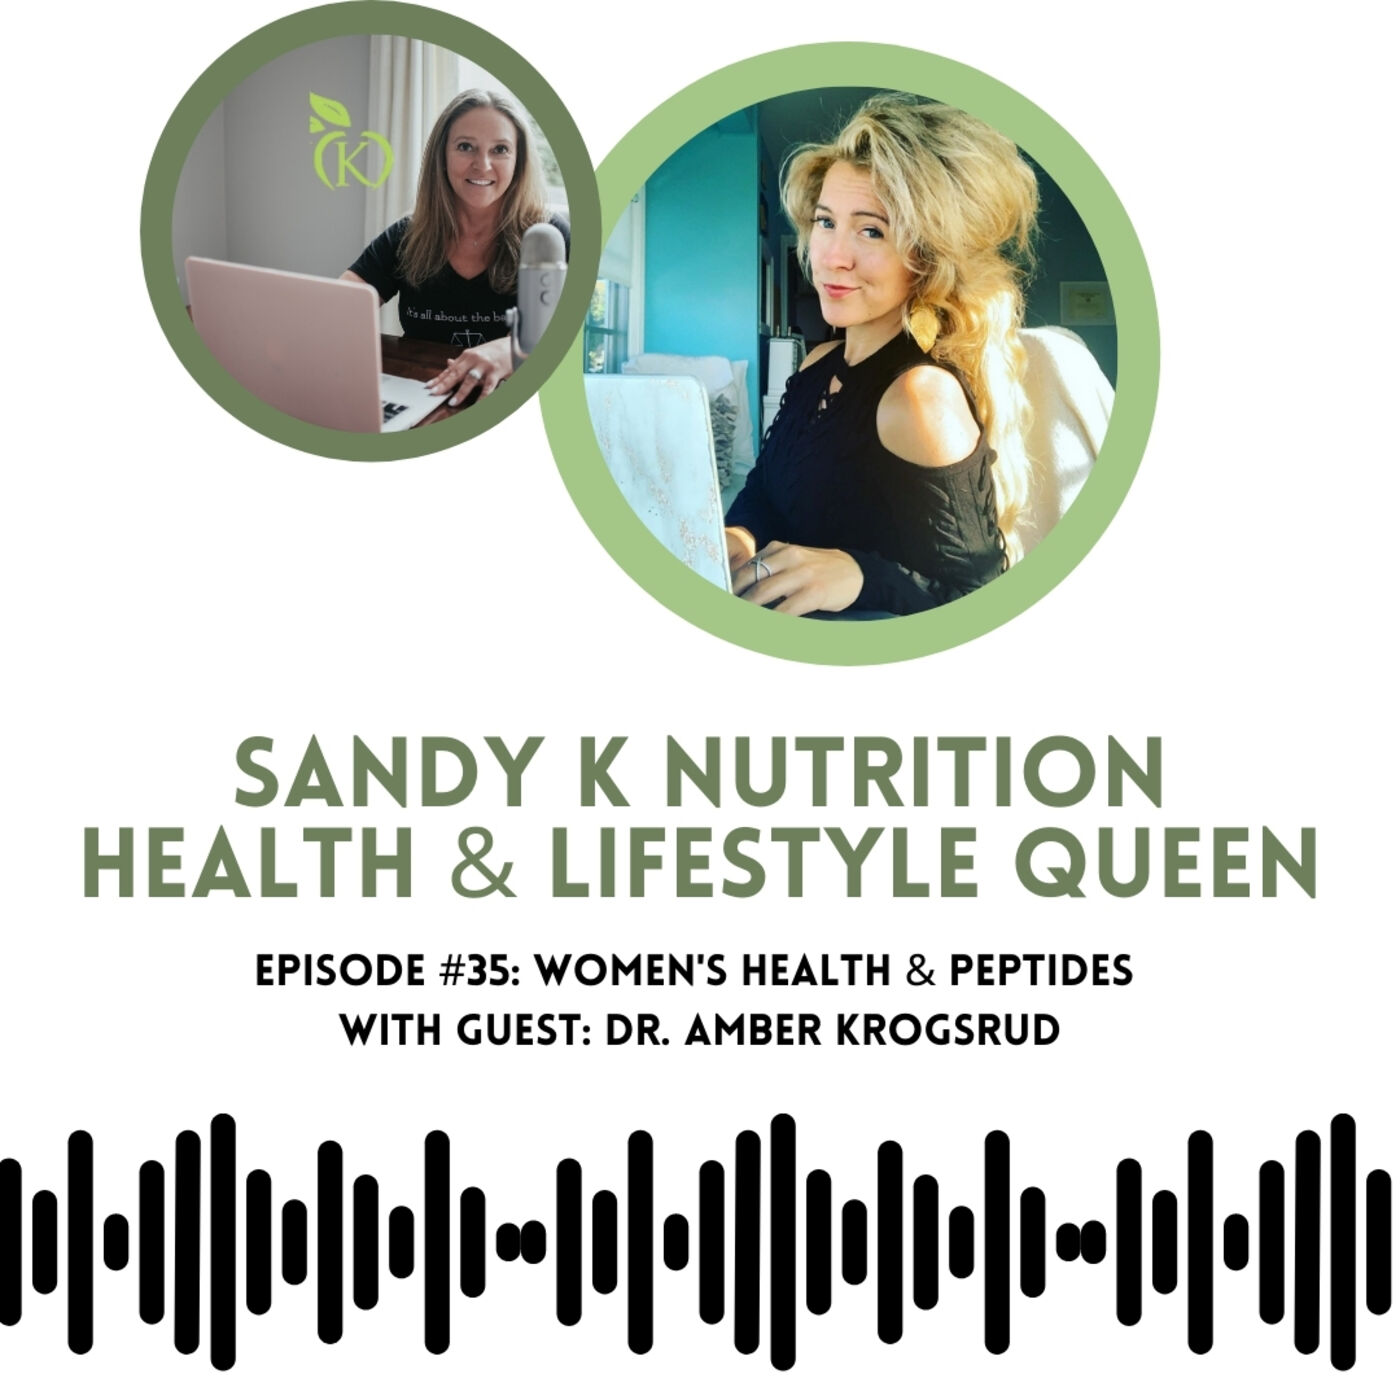 Episode 35 Women's Health & Peptides with Dr. Amber